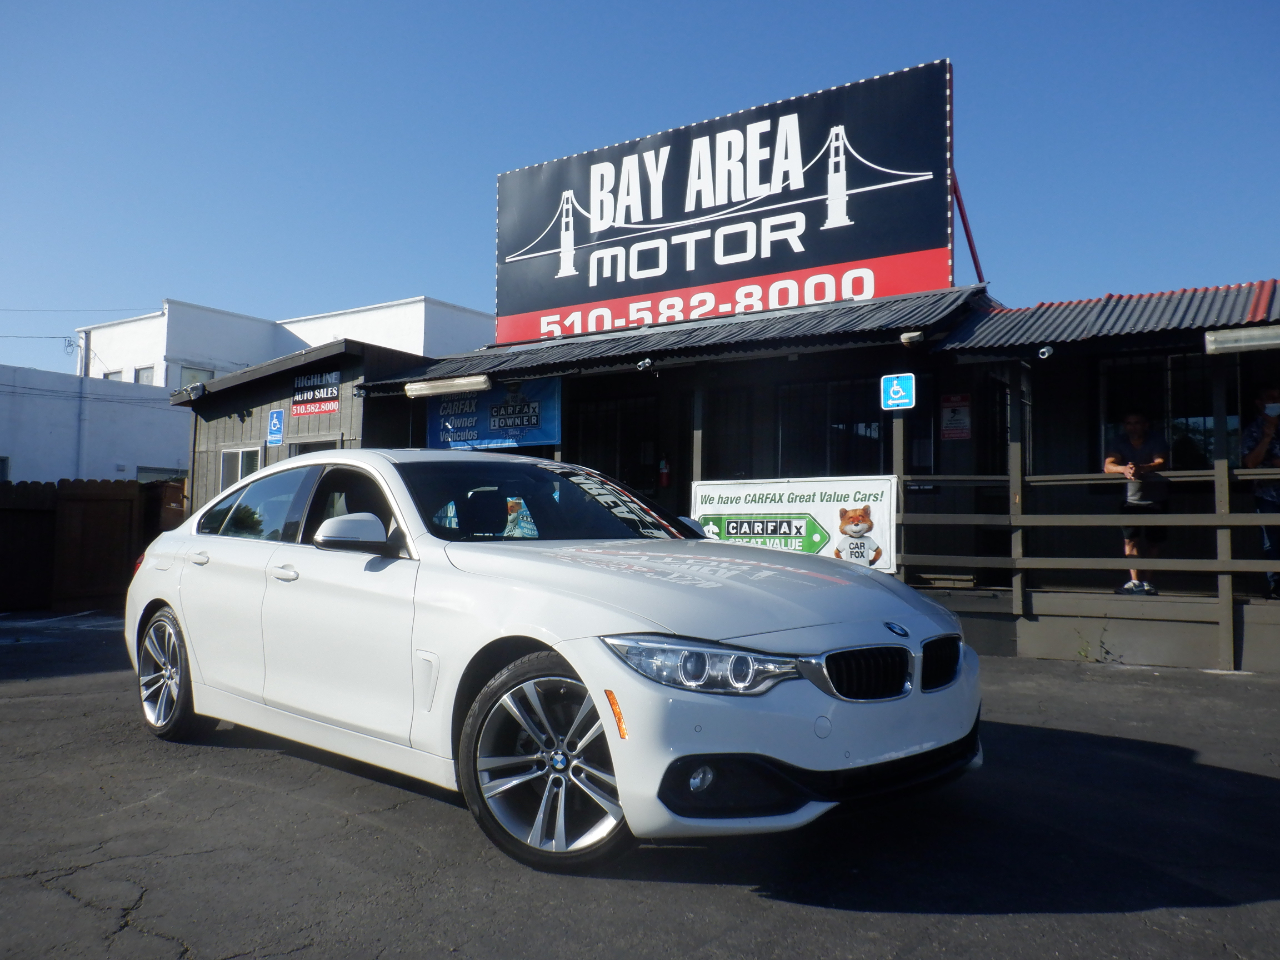 Used 2017 Bmw 4 Series Gran Coupe 430i For Sale In Hayward Ca 94541 Bay Area Motor